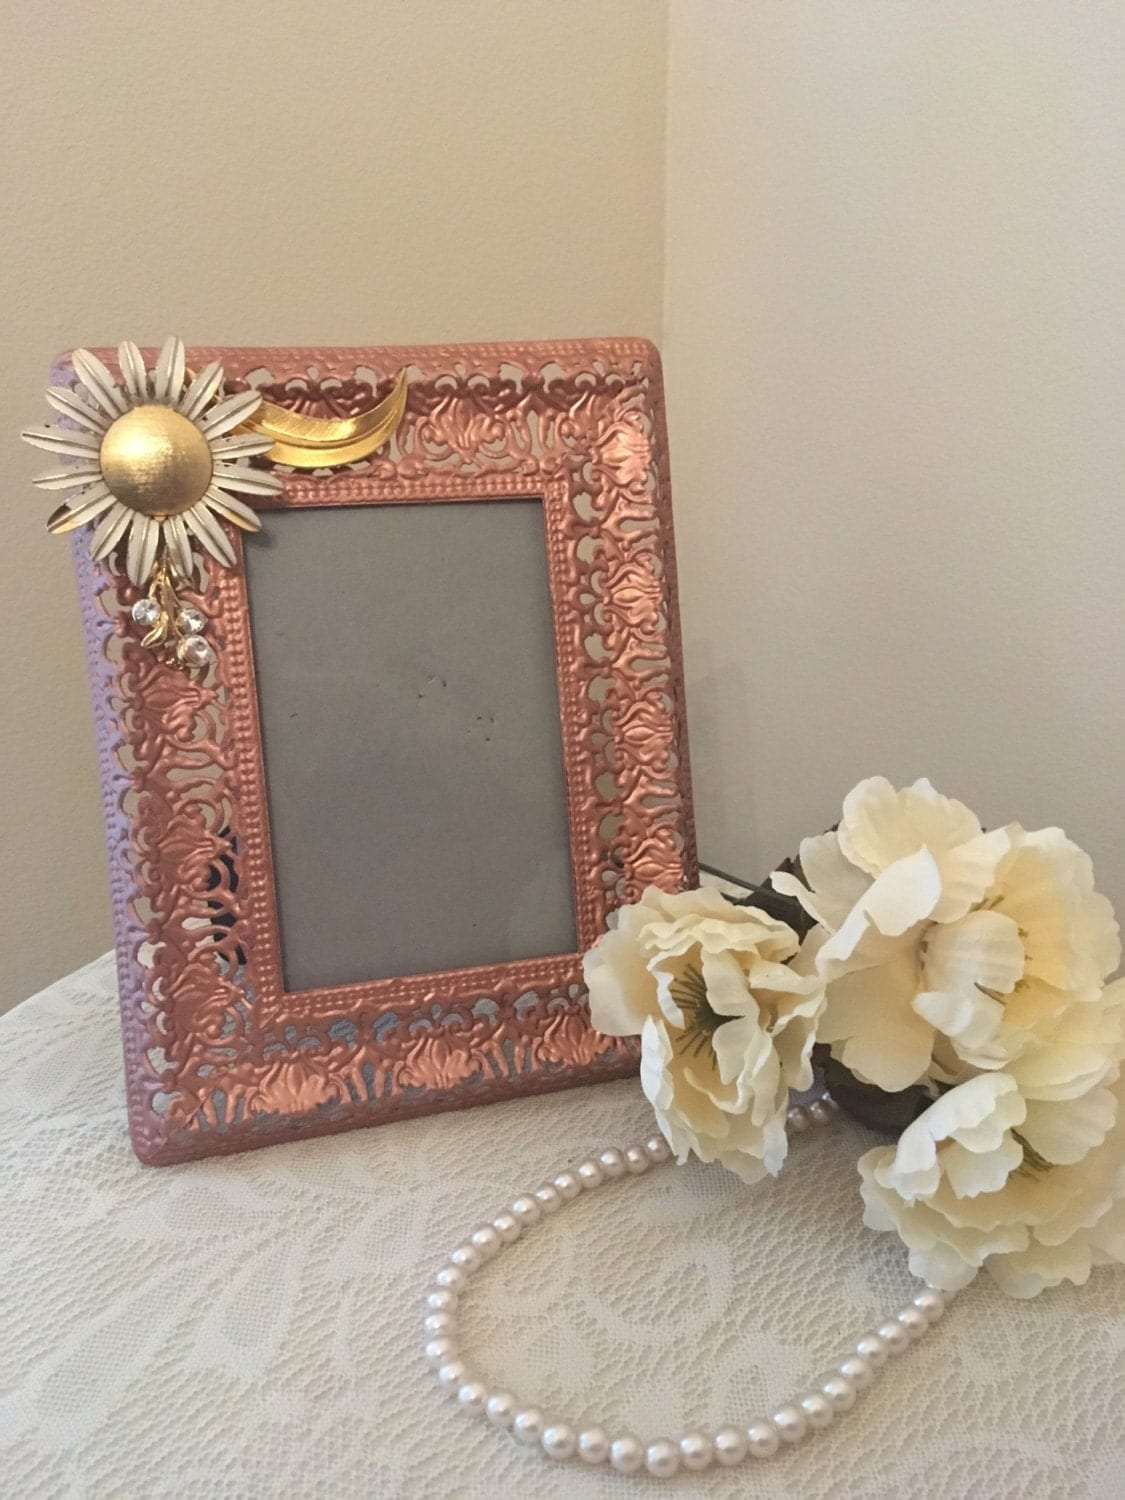 Sale rose gold home decor copper decor picture frame for House decor sale